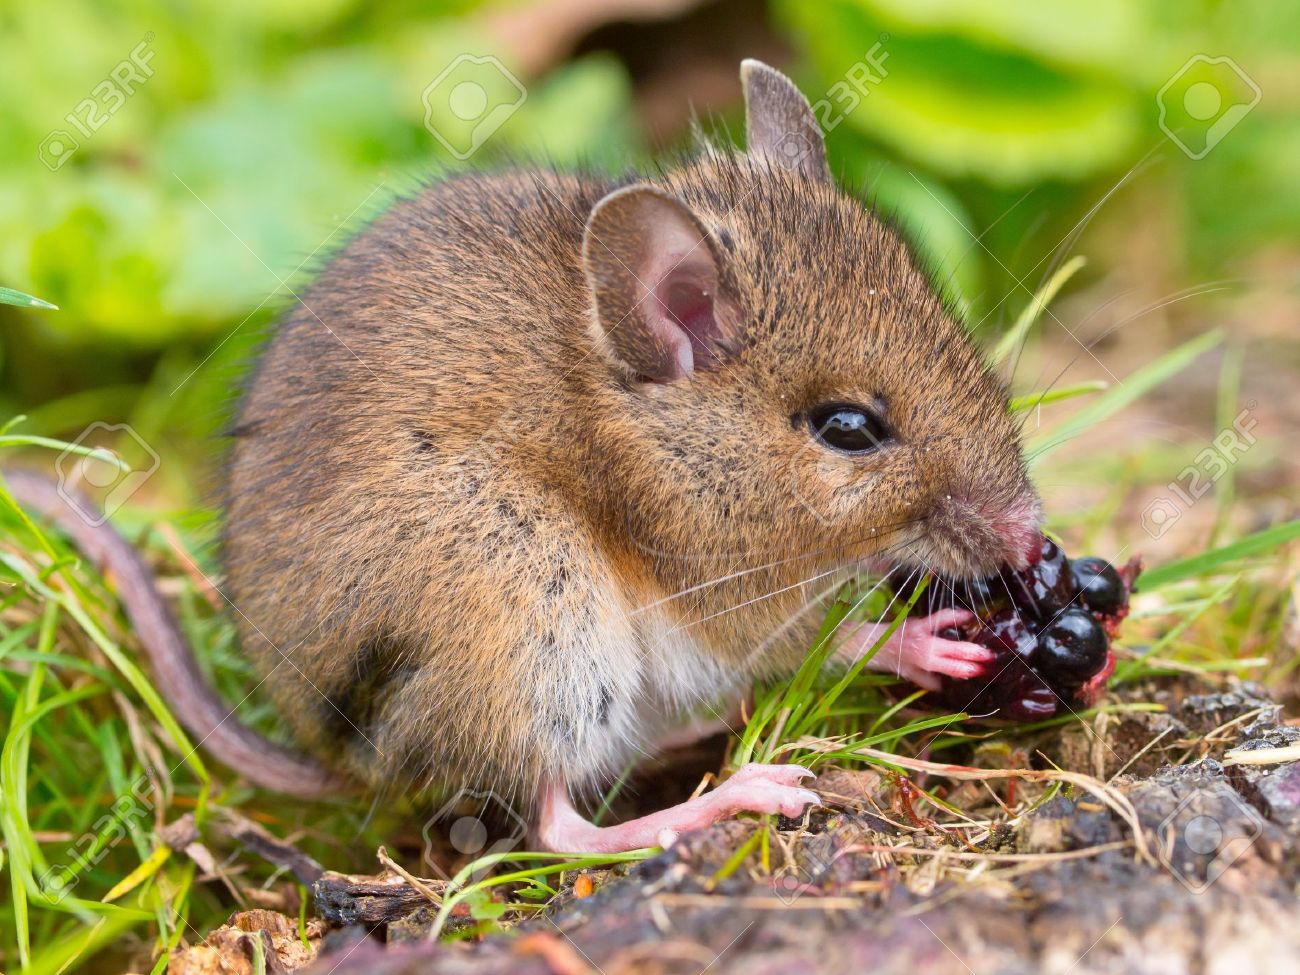 Wild mouse eating raspberry on log sideview Stock Photo - 11334343